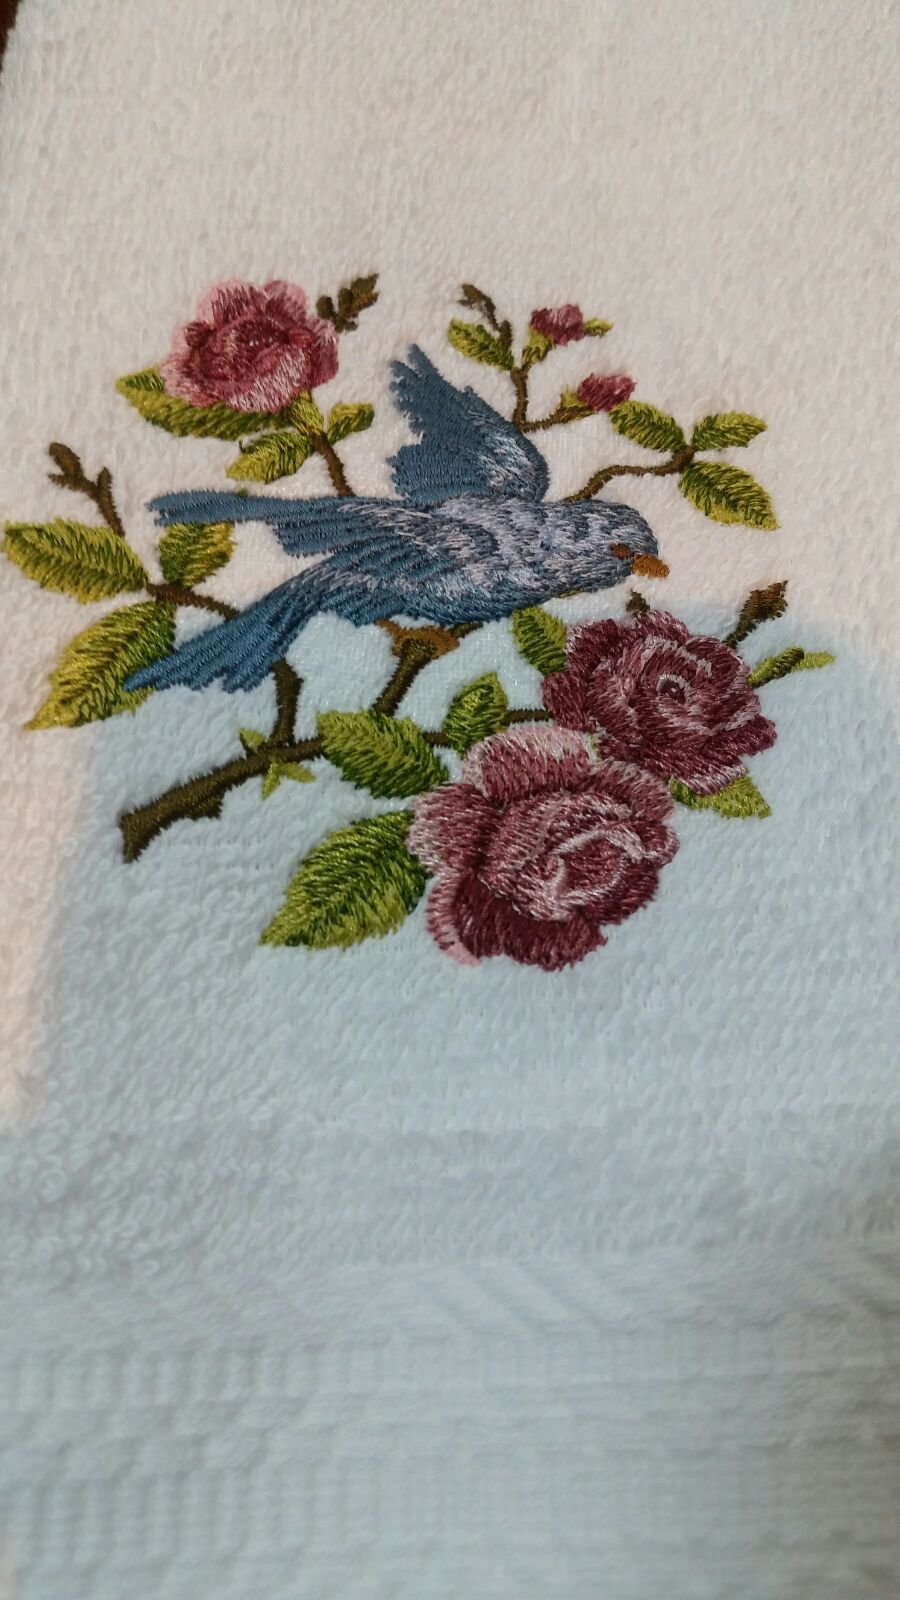 embroidered bluebird roses towel set